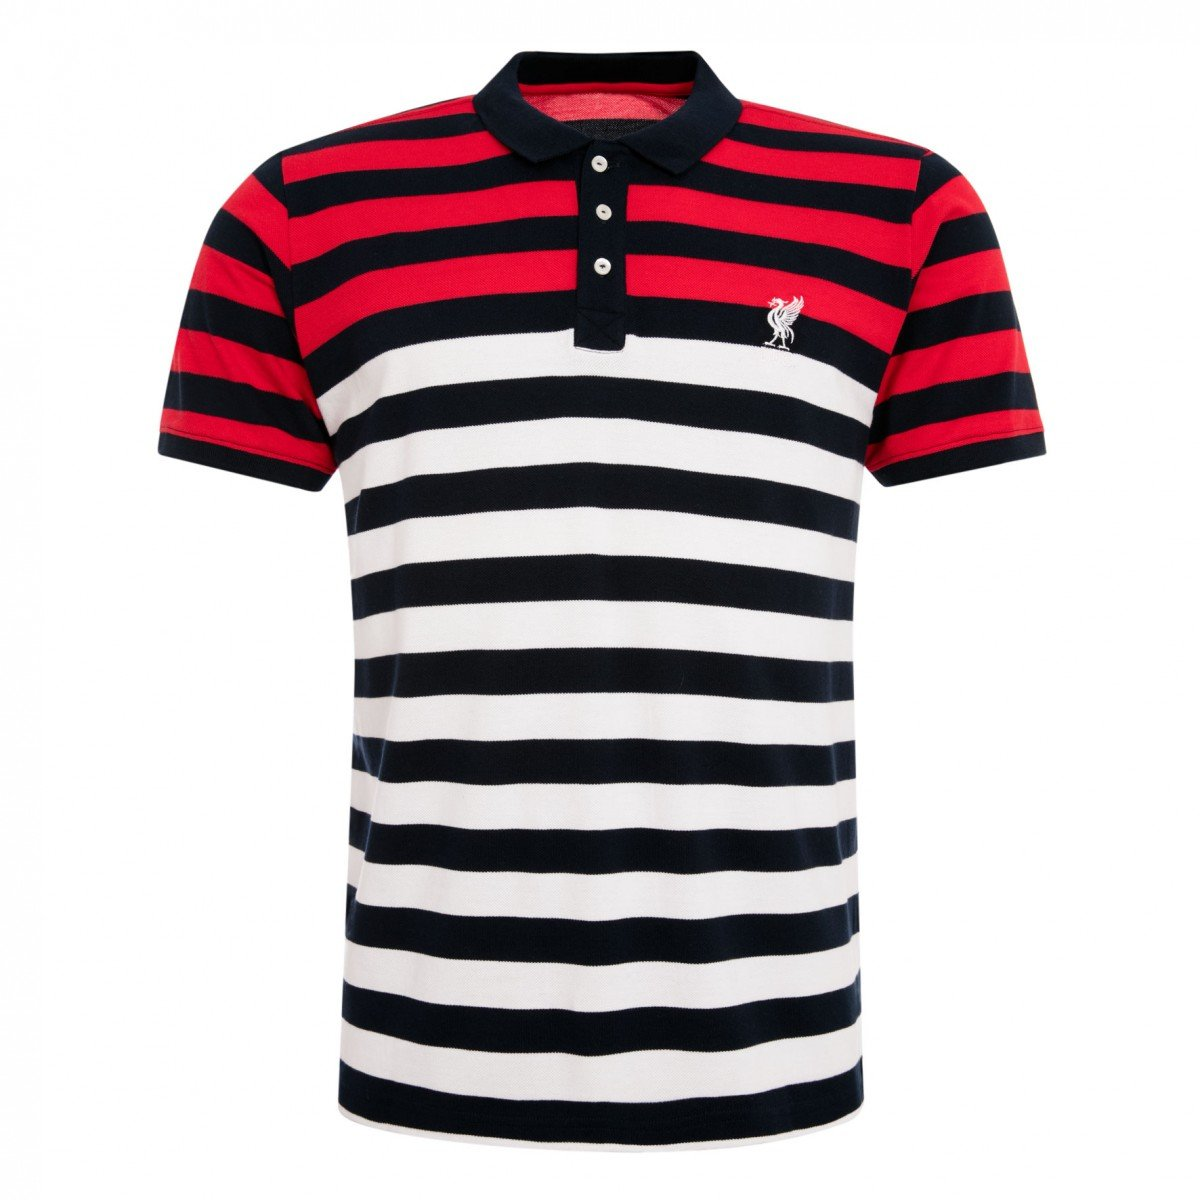 Liverpool FC Core Striped Polo Camiseta, rojo, blanco, negro, xx ...